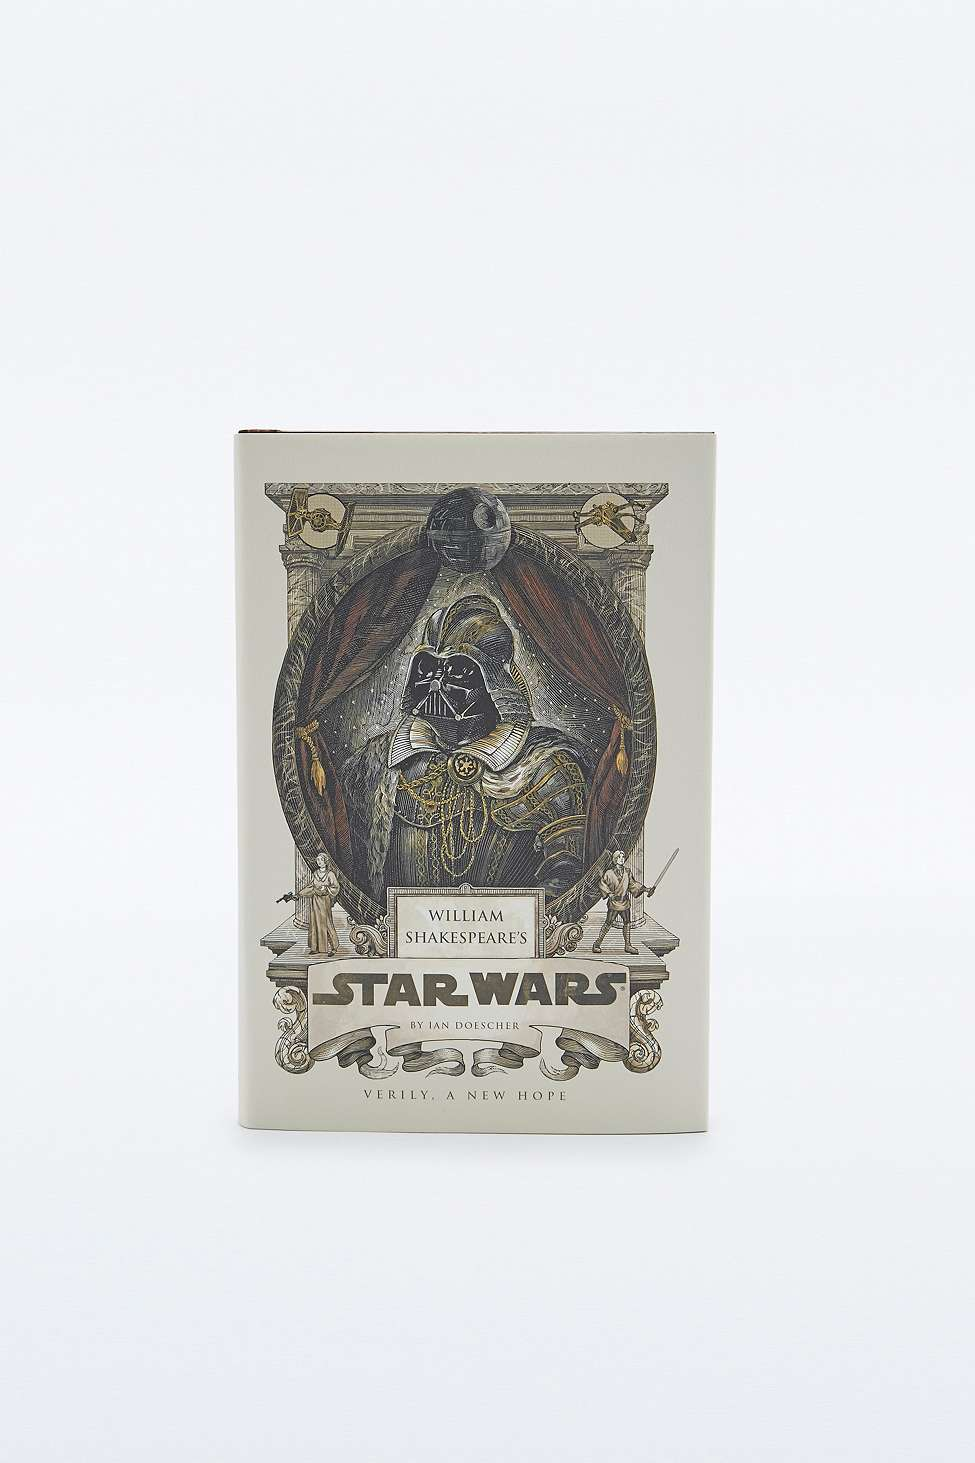 Shakespeare's Star Wars Unique And Quirky Gift Ideas Any Odd Person Will Appreciate (Fun Gifts!)